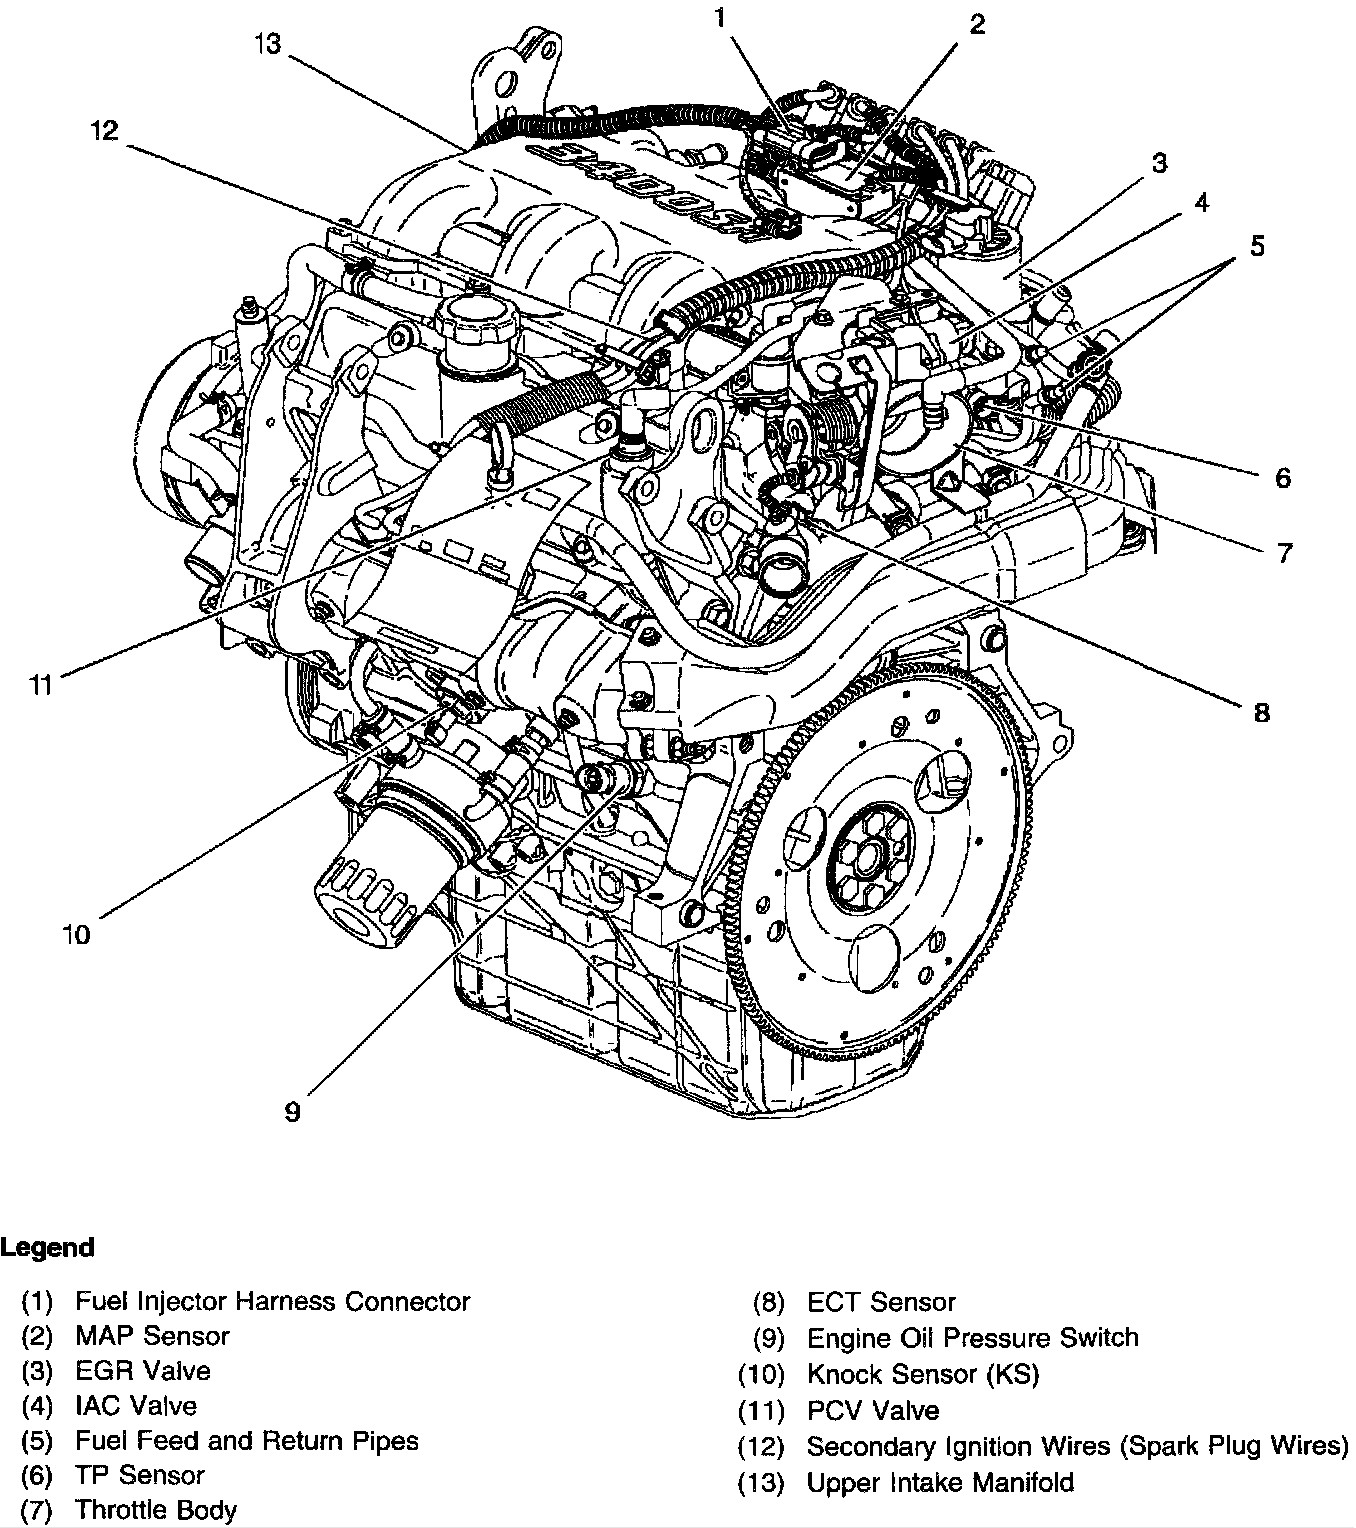 G6 Engine Wiring Diagram Library Pontiac Alternator 3 4l V6 Experts Of U2022 Rh Evilcloud Co Uk